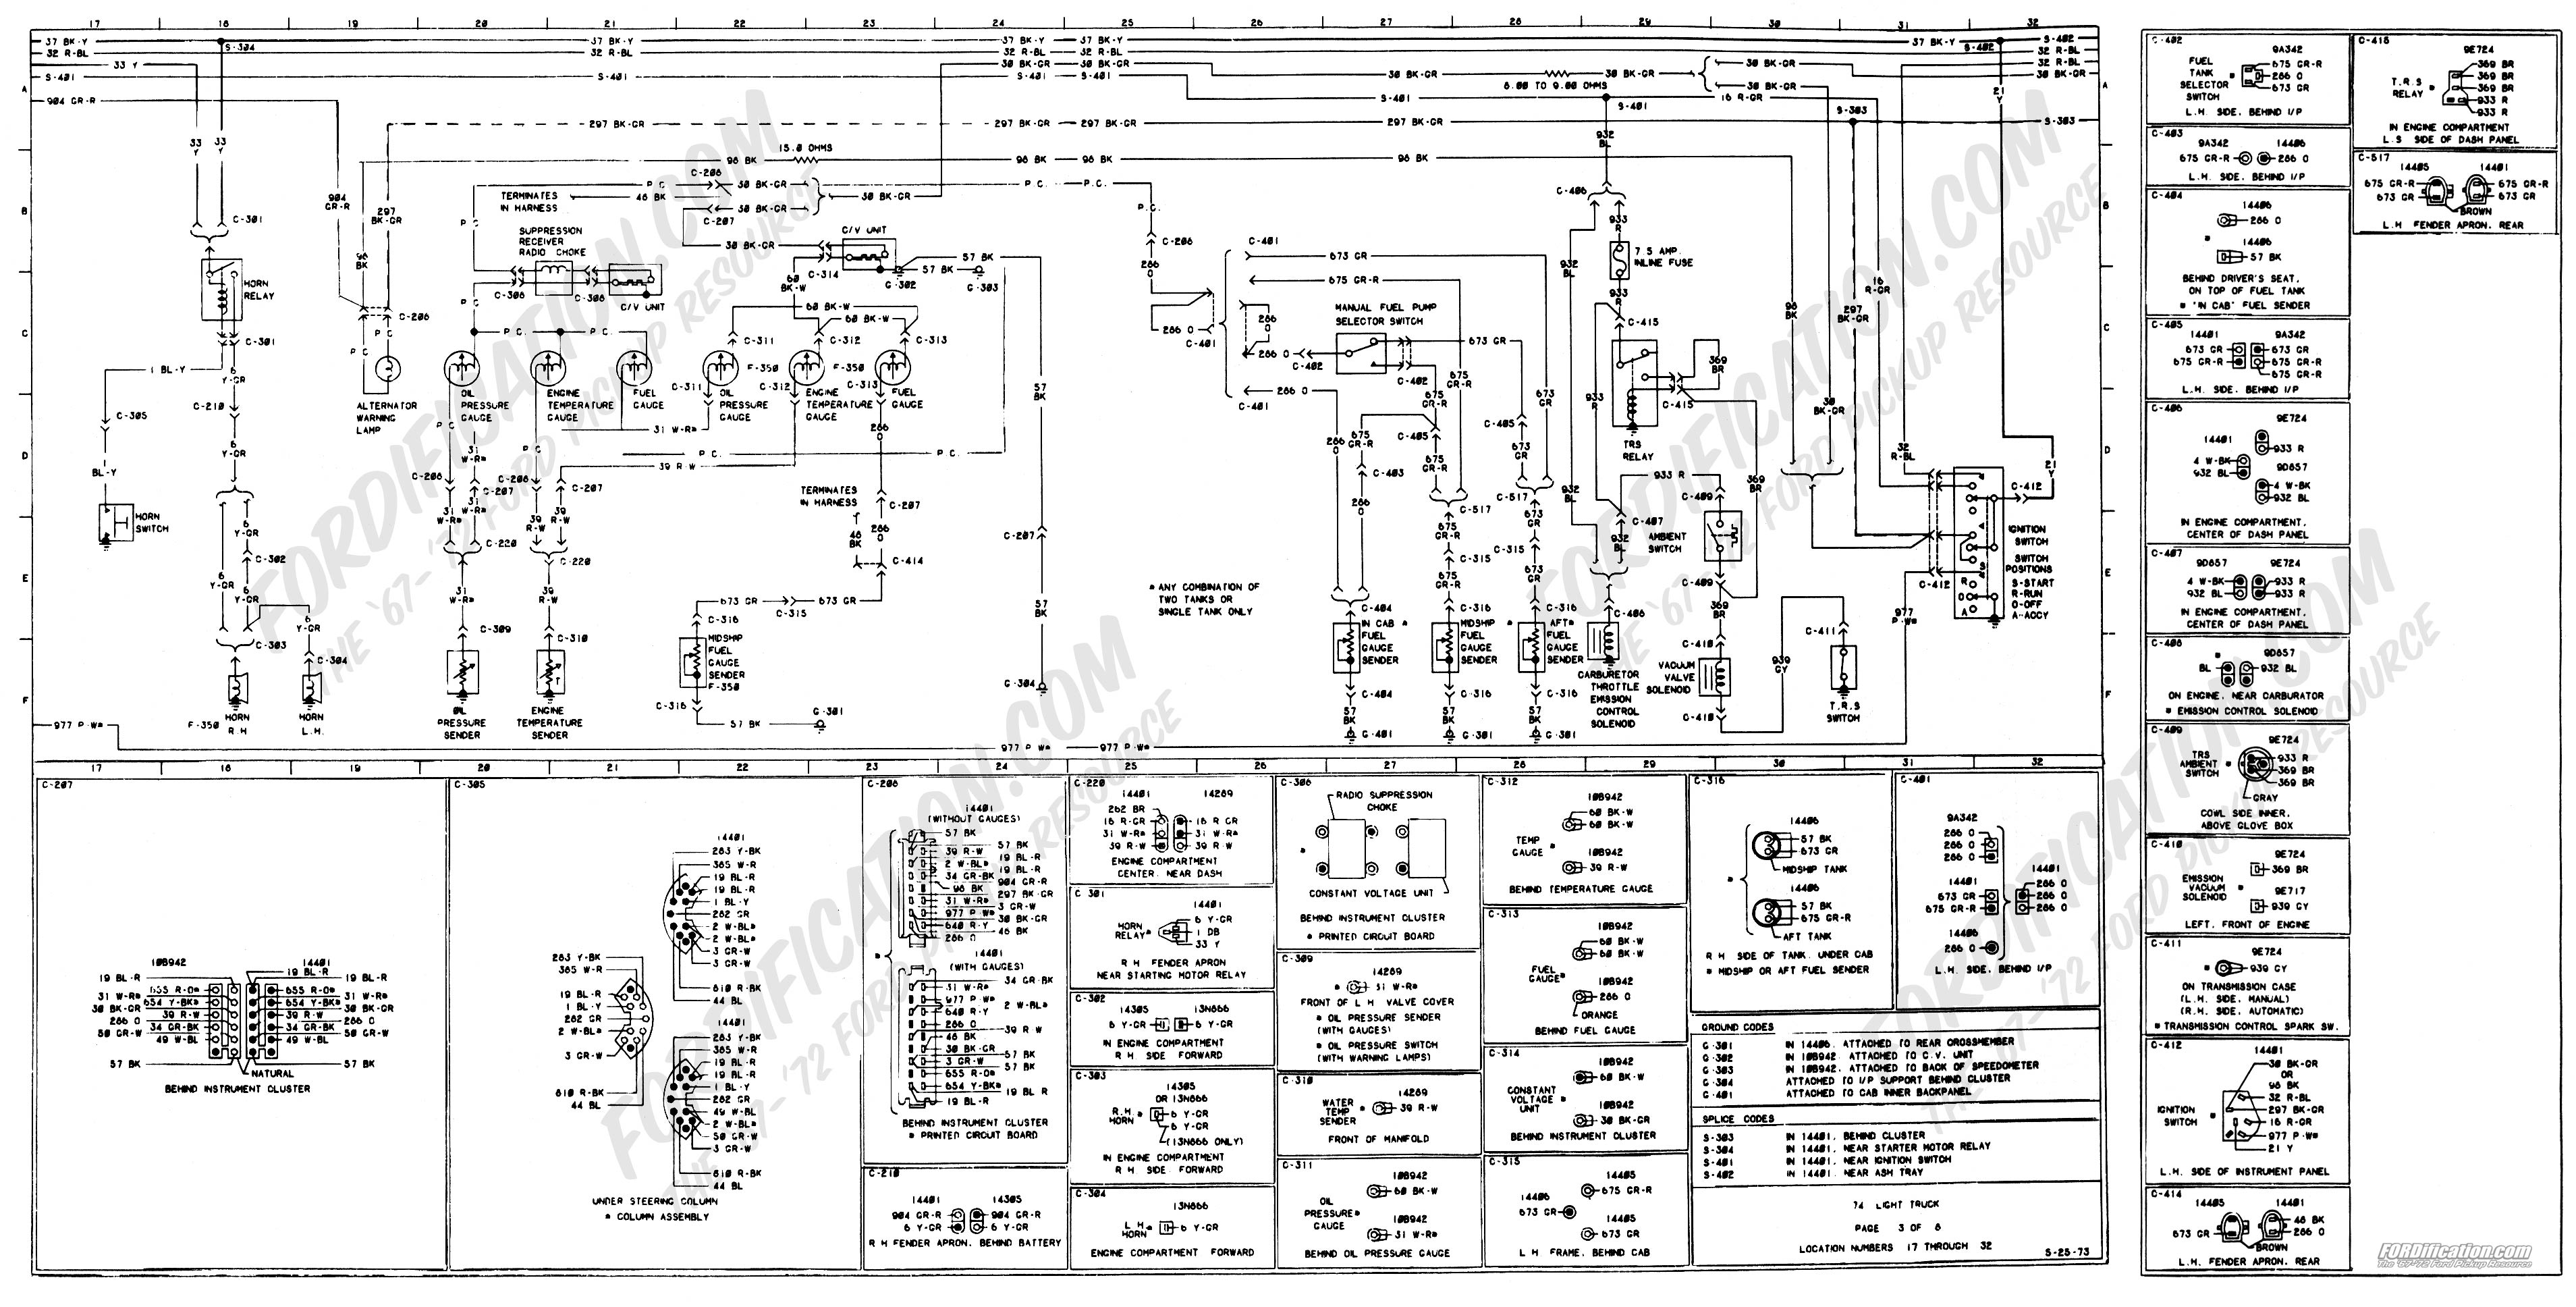 wiring_74master_3of8 1973 1979 ford truck wiring diagrams & schematics fordification net truck wiring diagrams at edmiracle.co